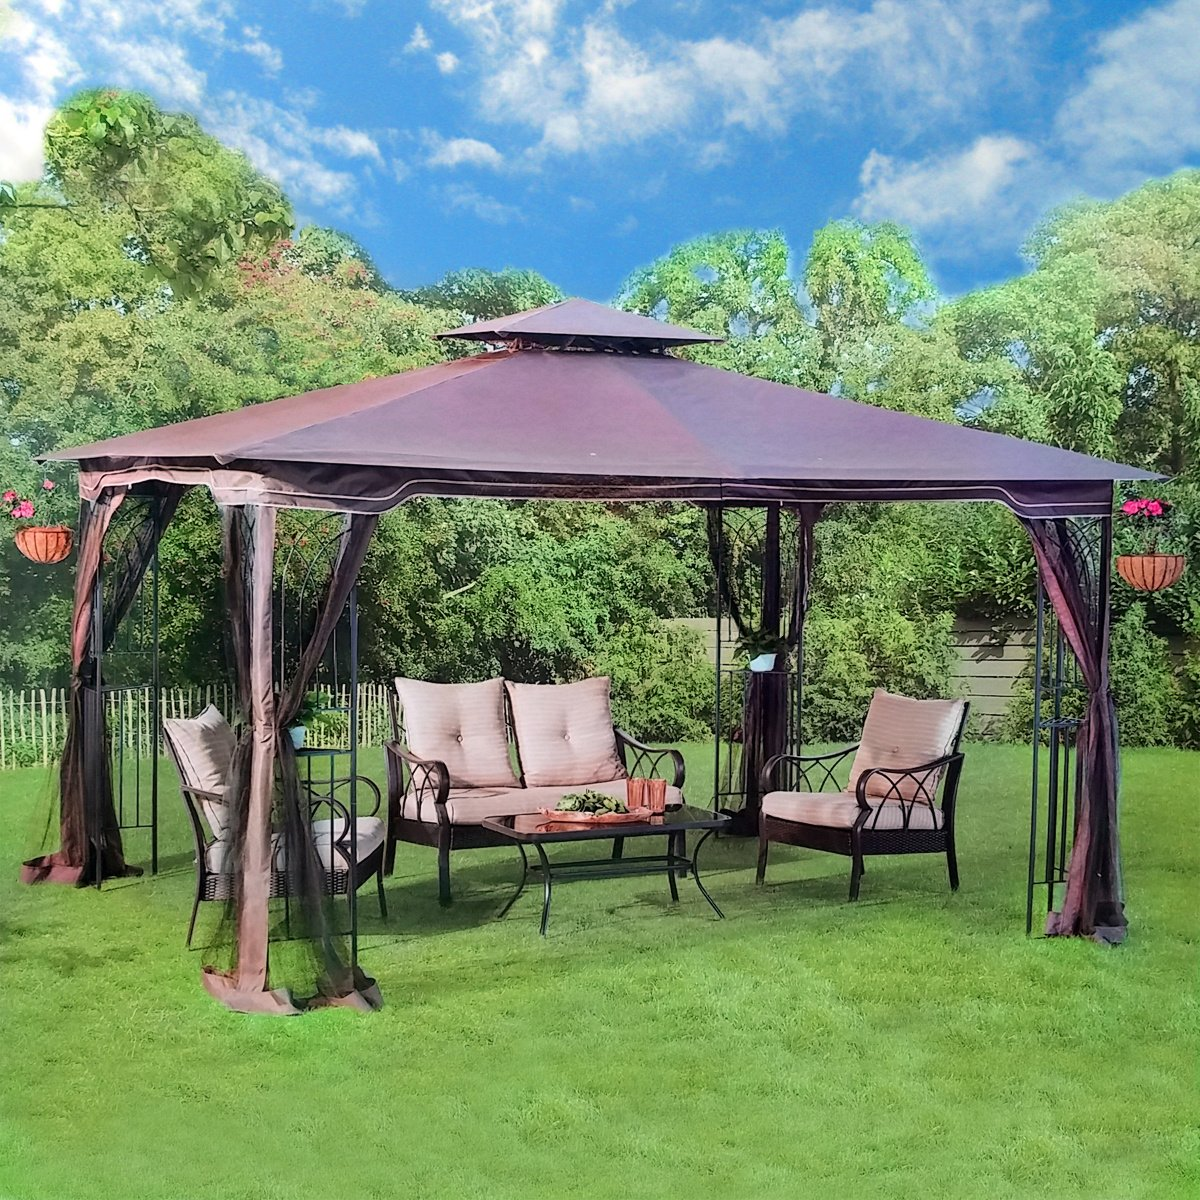 Outdoor garden gazebo pergola patio furniture metal frame for Outdoor furniture gazebo